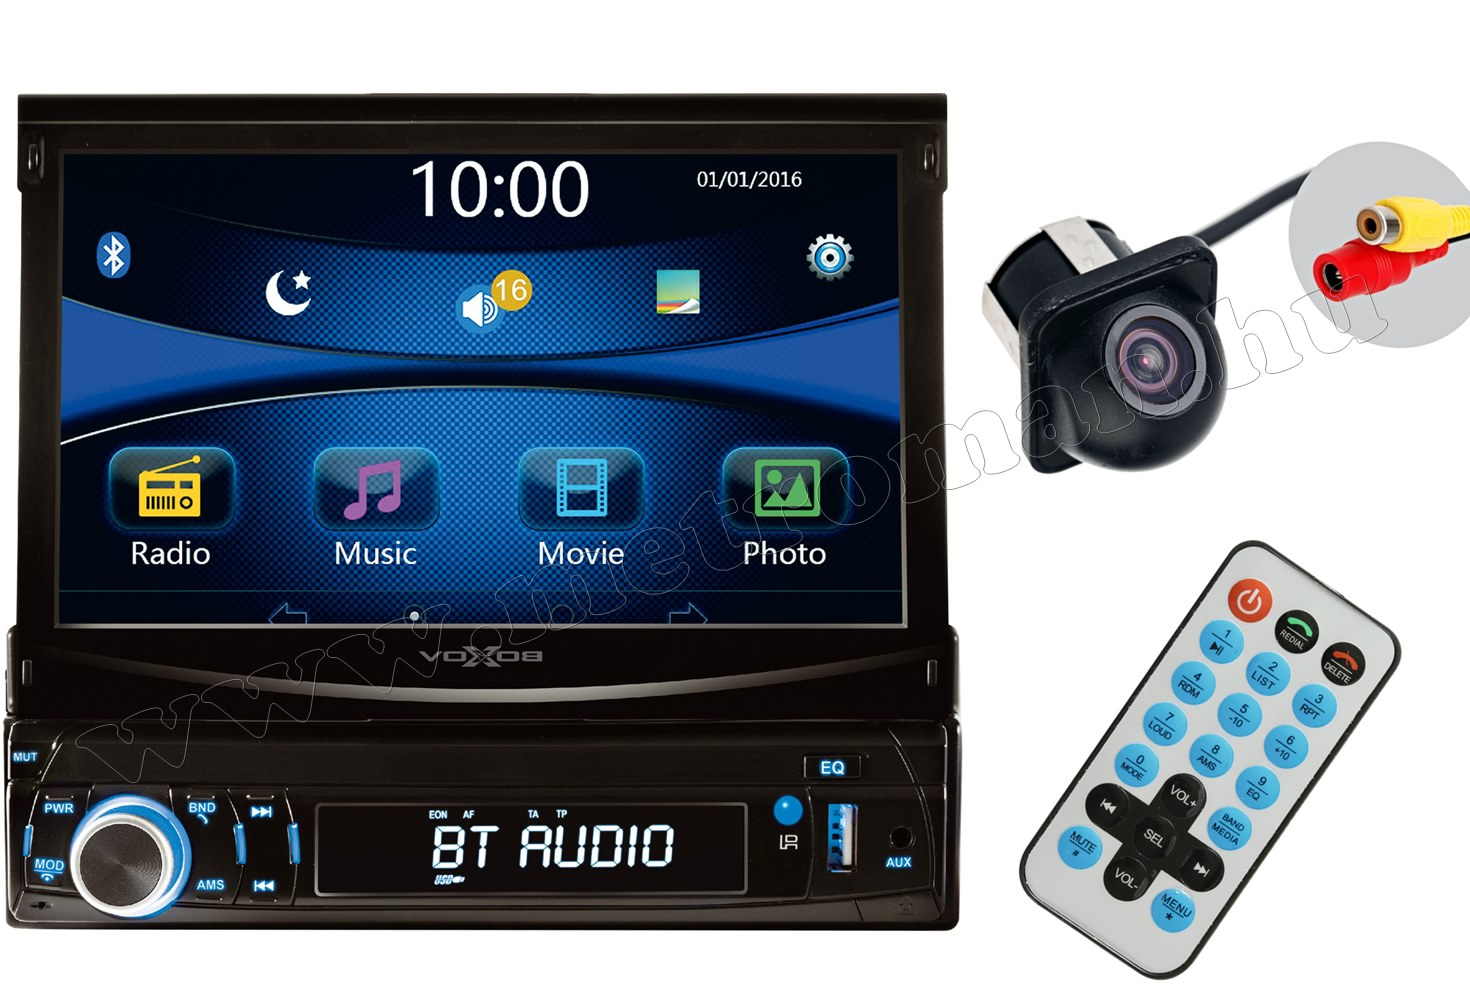 USB/SD MP3 MP4 MP5 Bluetooth Multimédiás autórádió LCD monitorral Tolatókamerával VB X700 BT CAPS0229